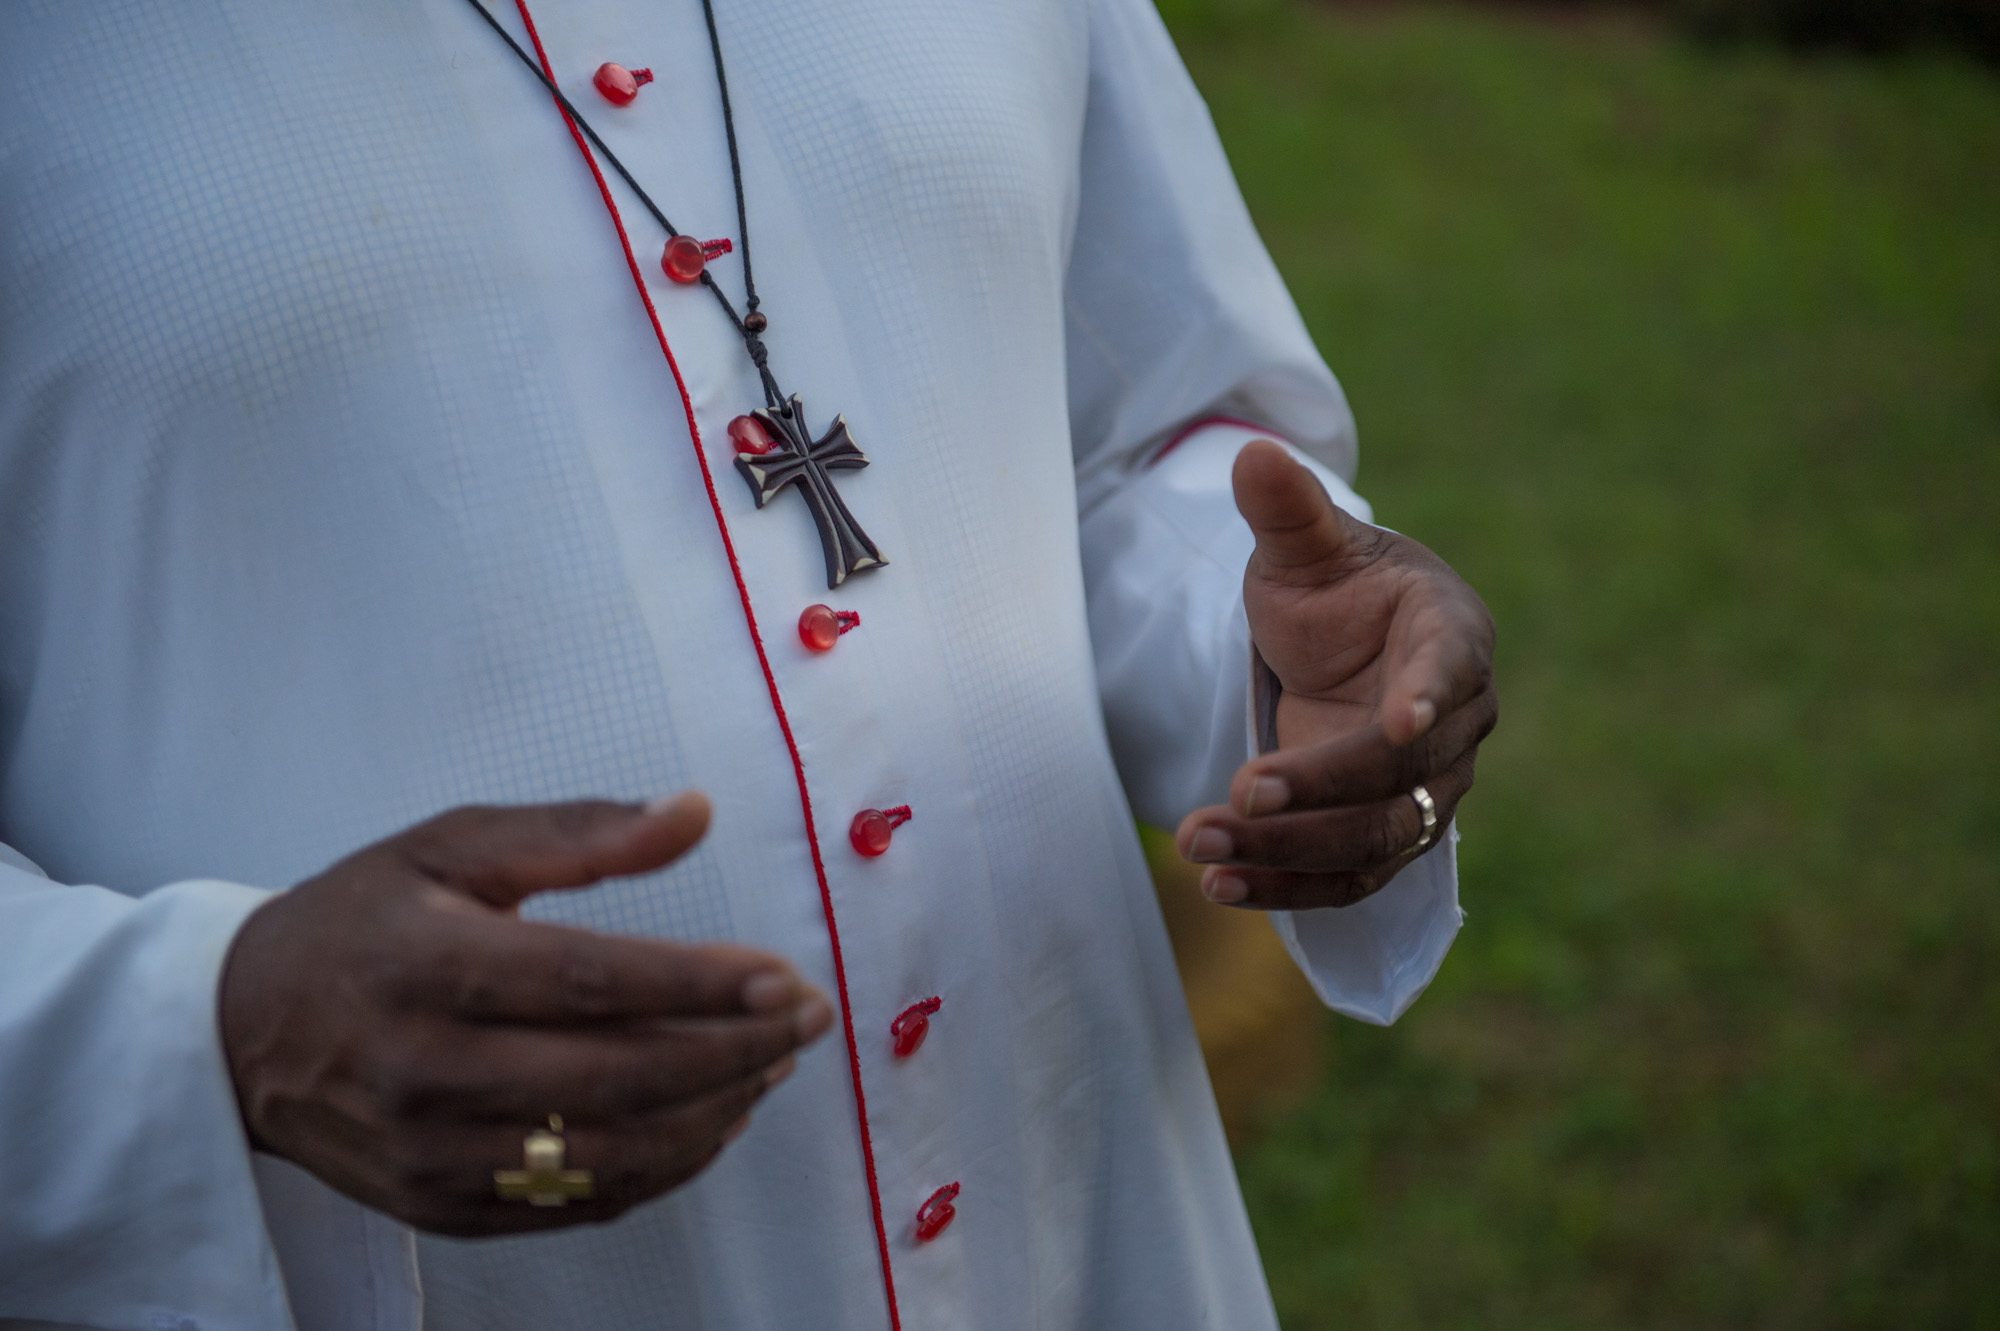 Bishop Eduardo of South Sudan's hands.